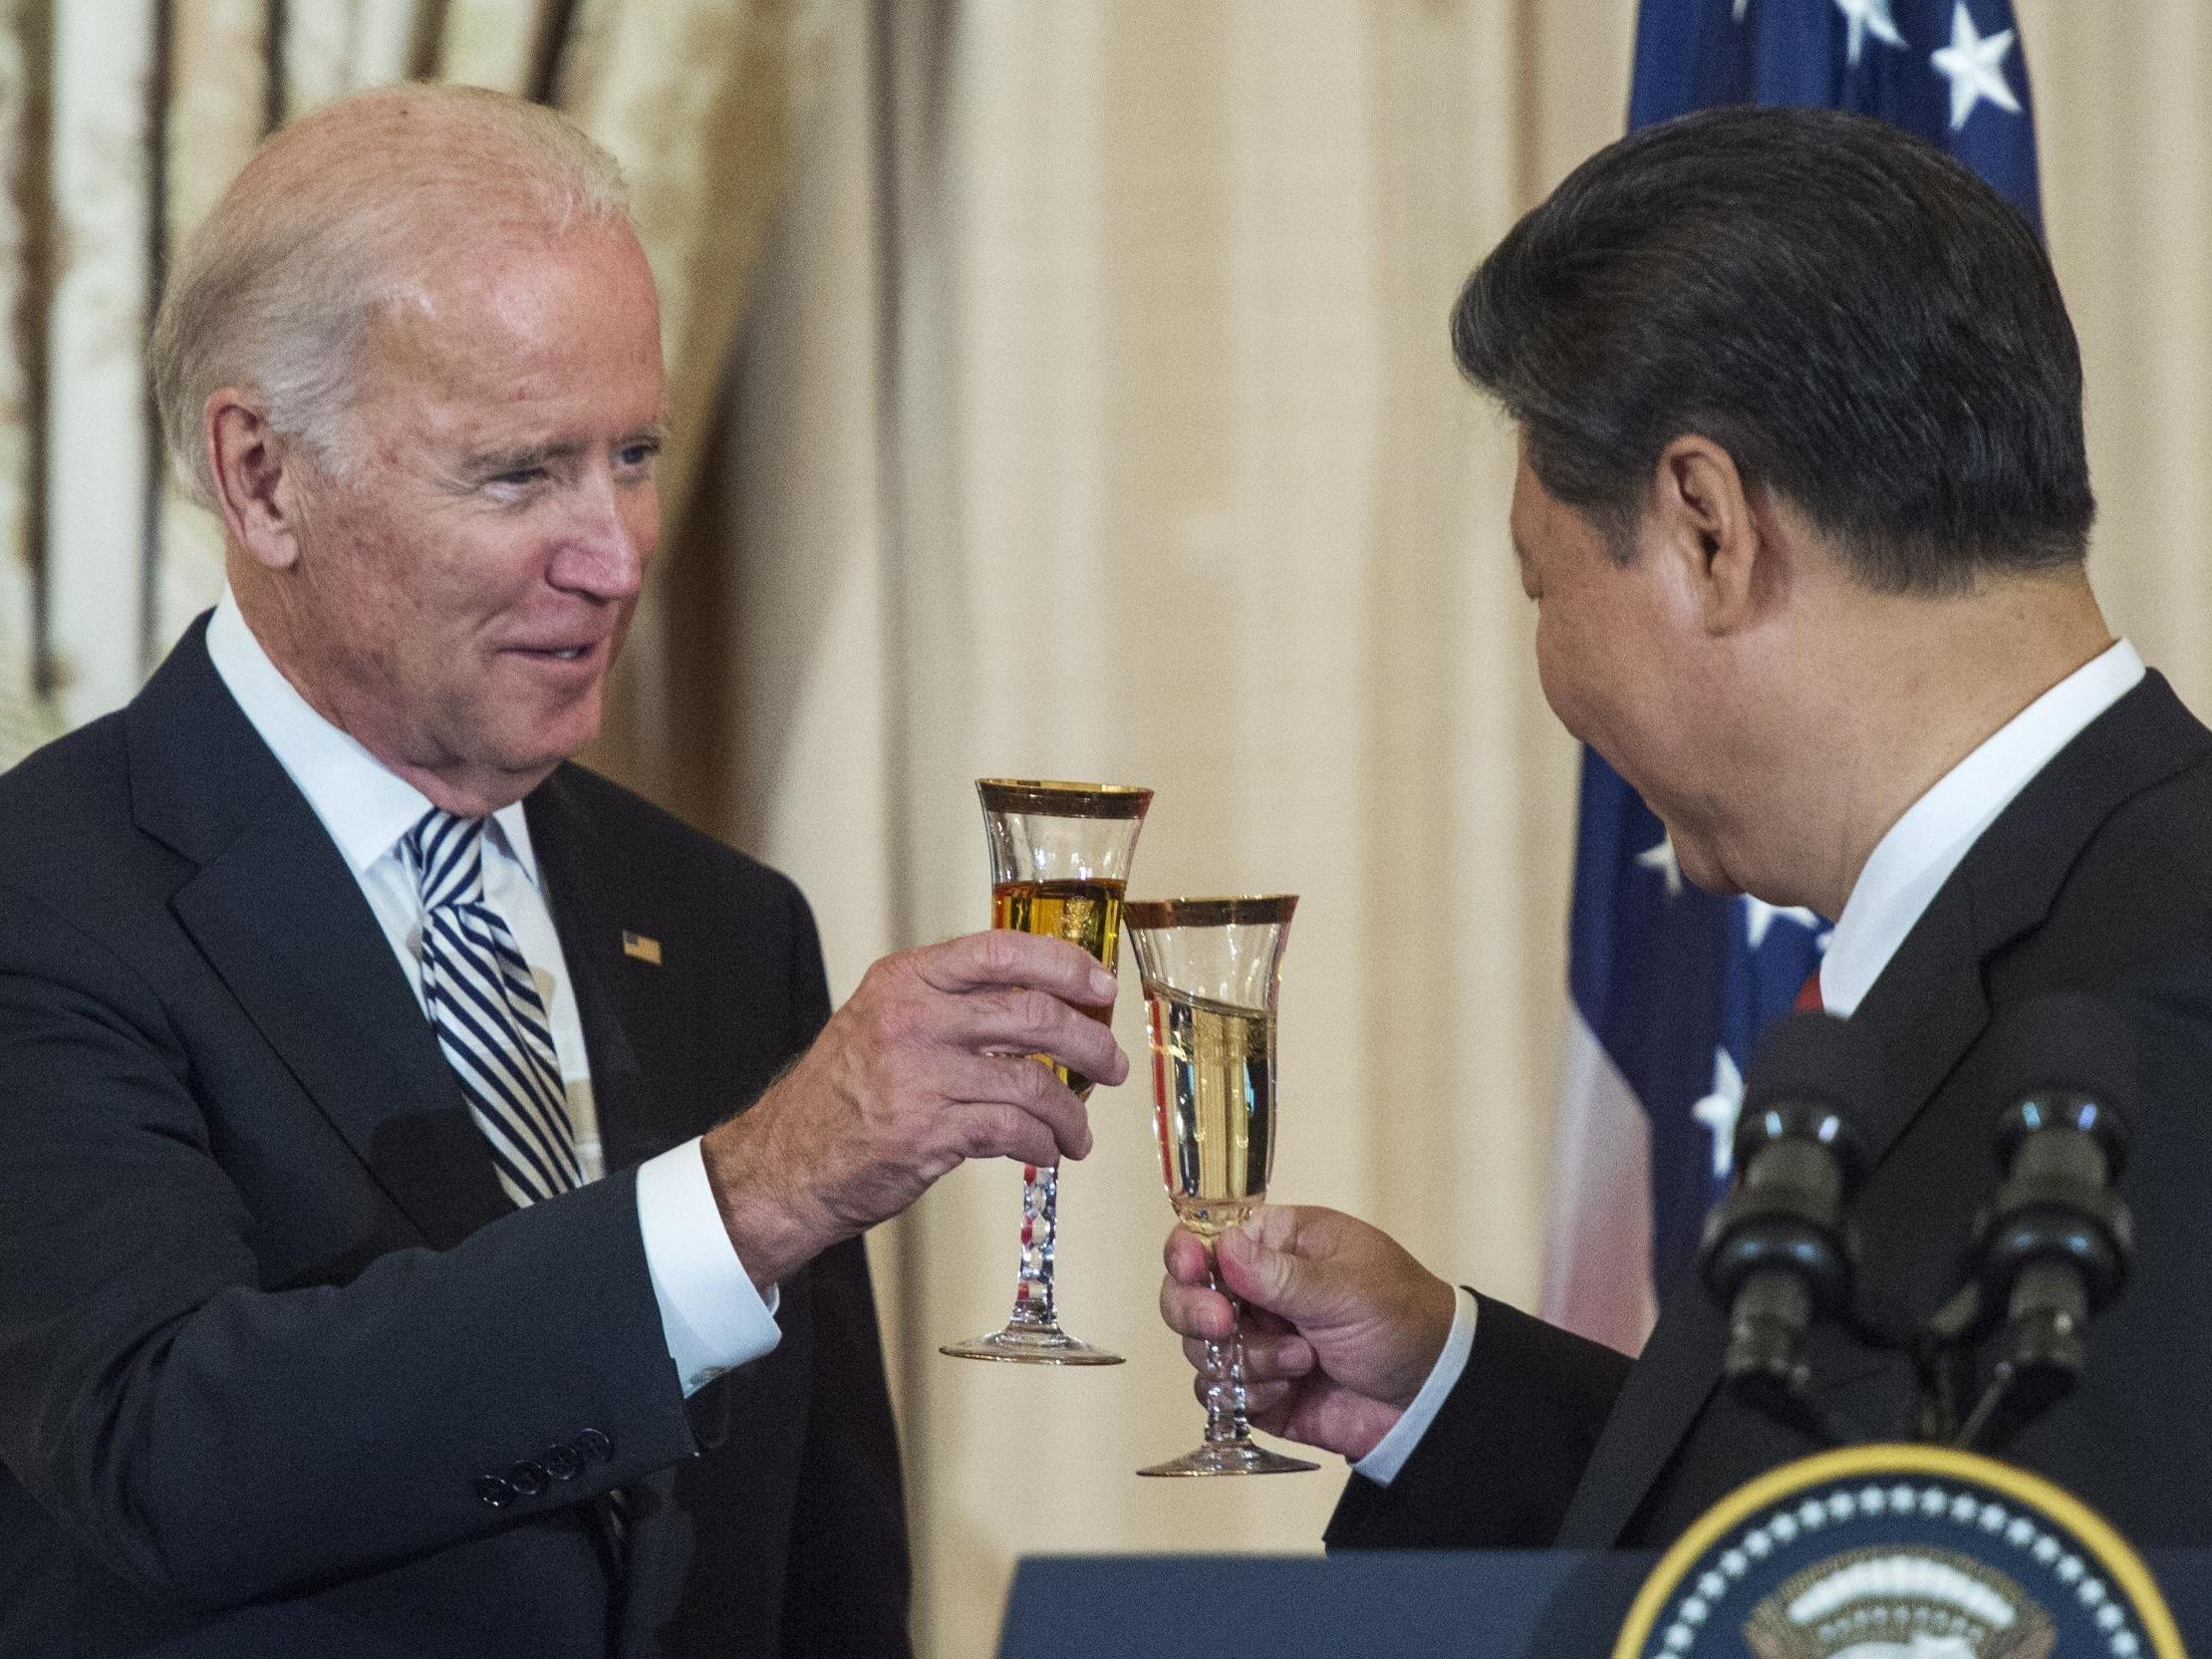 Trump using anger towards China over coronavirus to attack Joe Biden as  election battle takes shape   The Independent   The Independent